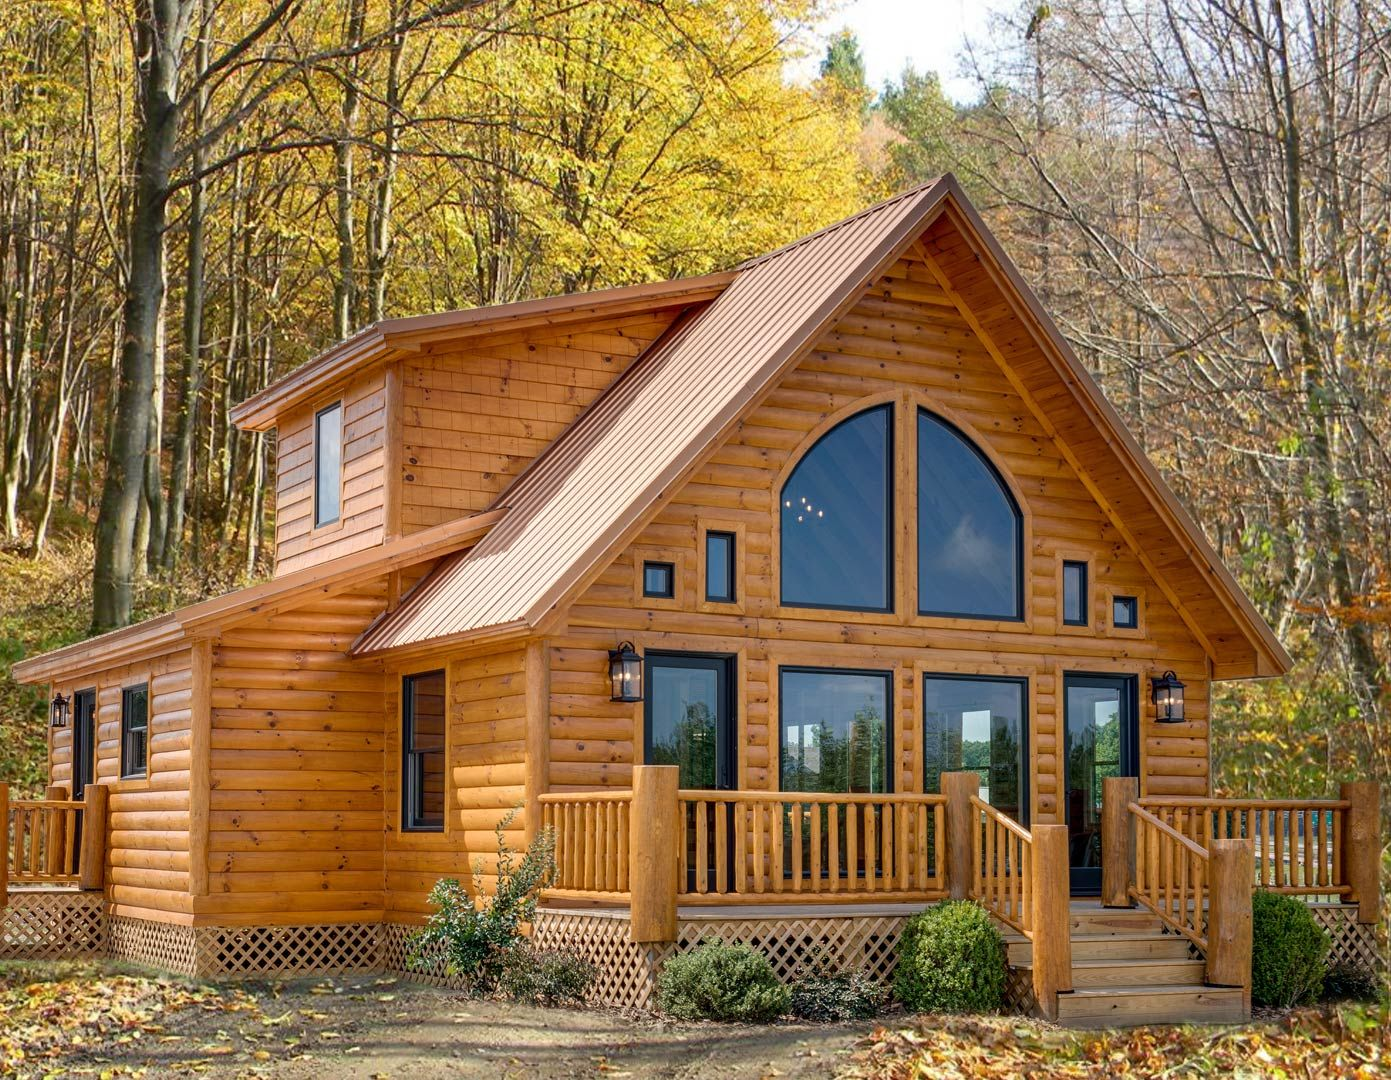 Spectacular Affordable Log Home Packages Starting At 45k To 60k Enjoy Extra Savings Free Gifts For All Log Homes Cabins In The Woods Cabins And Cottages